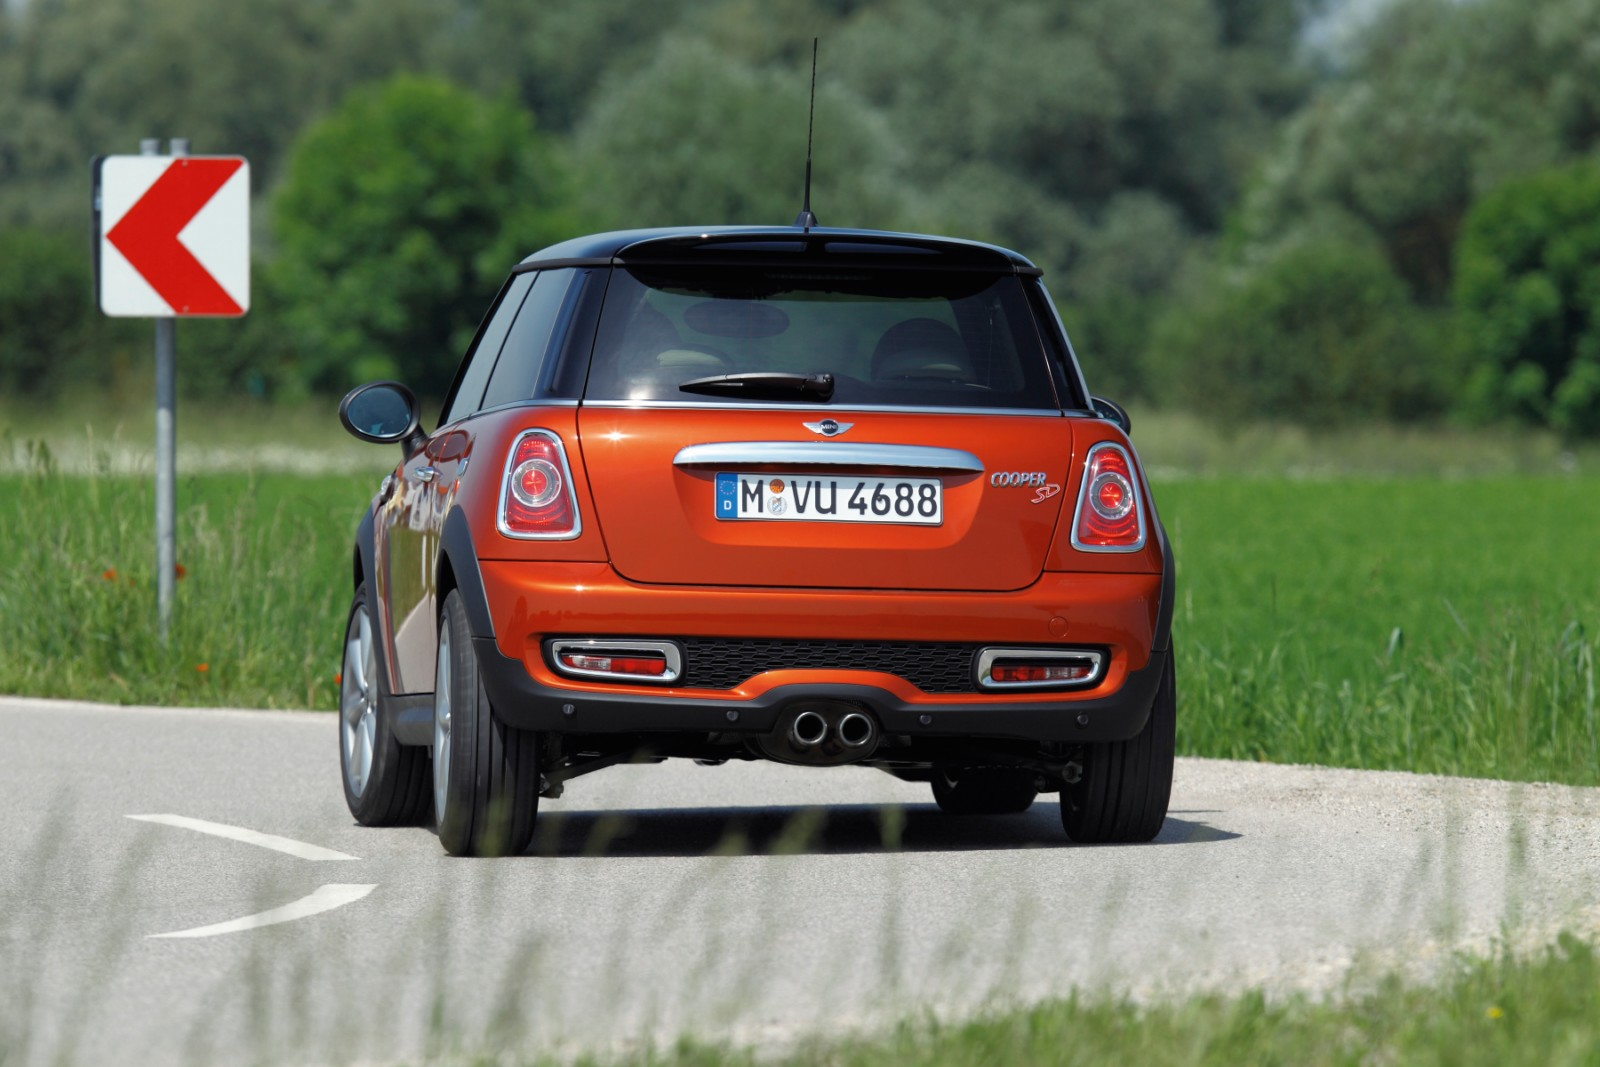 To Ensure That Its Emissions Are As Clean Possible The Mini Cooper Sd Is Ed With A Sel Particulate Filter And An Oxidation Catalytic Converter